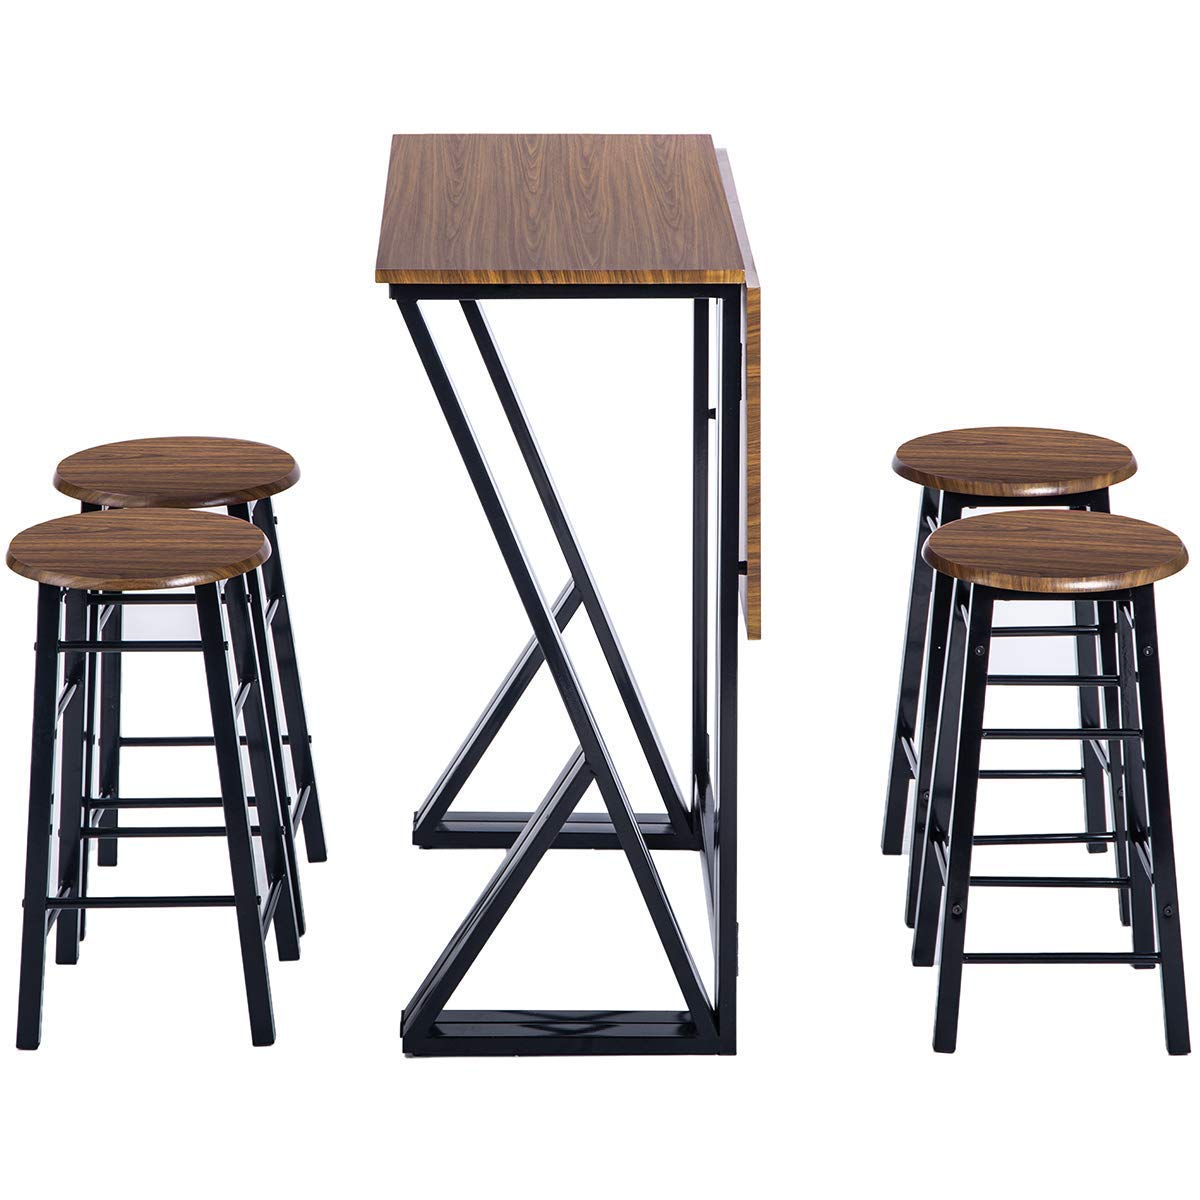 Monto Bar Table Set Indoor Metal Counter Height Dining Table Set Drop Leaf Folding Table with 4 Bar Stools Home- Brown 2